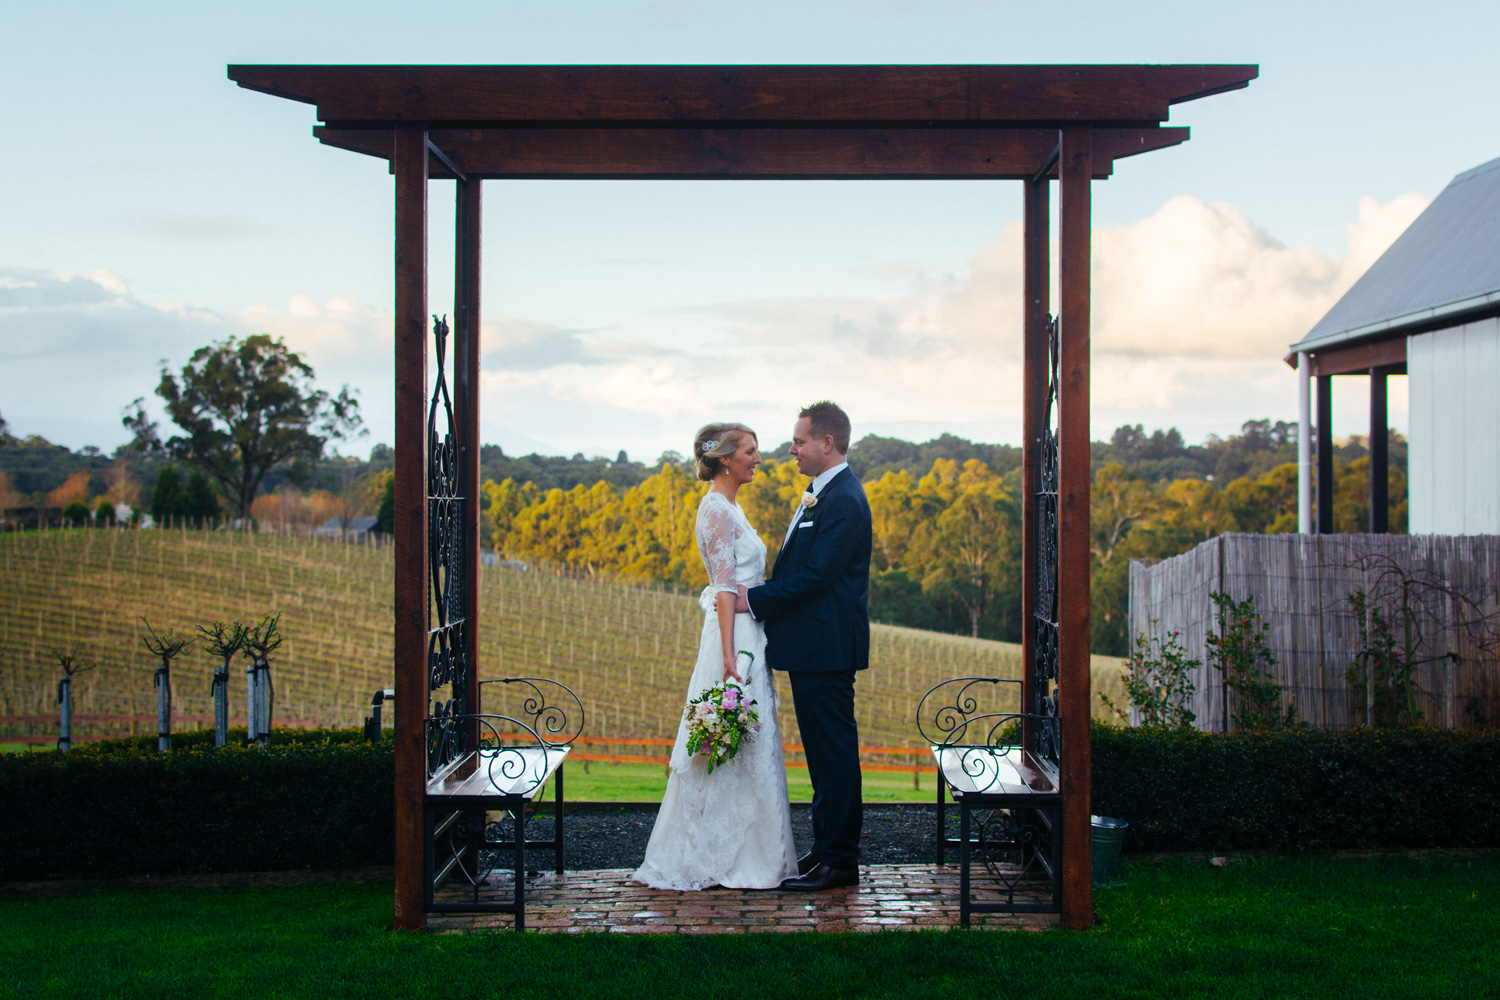 Adele & Matt - Yarra Ranges Estate, Monbulk